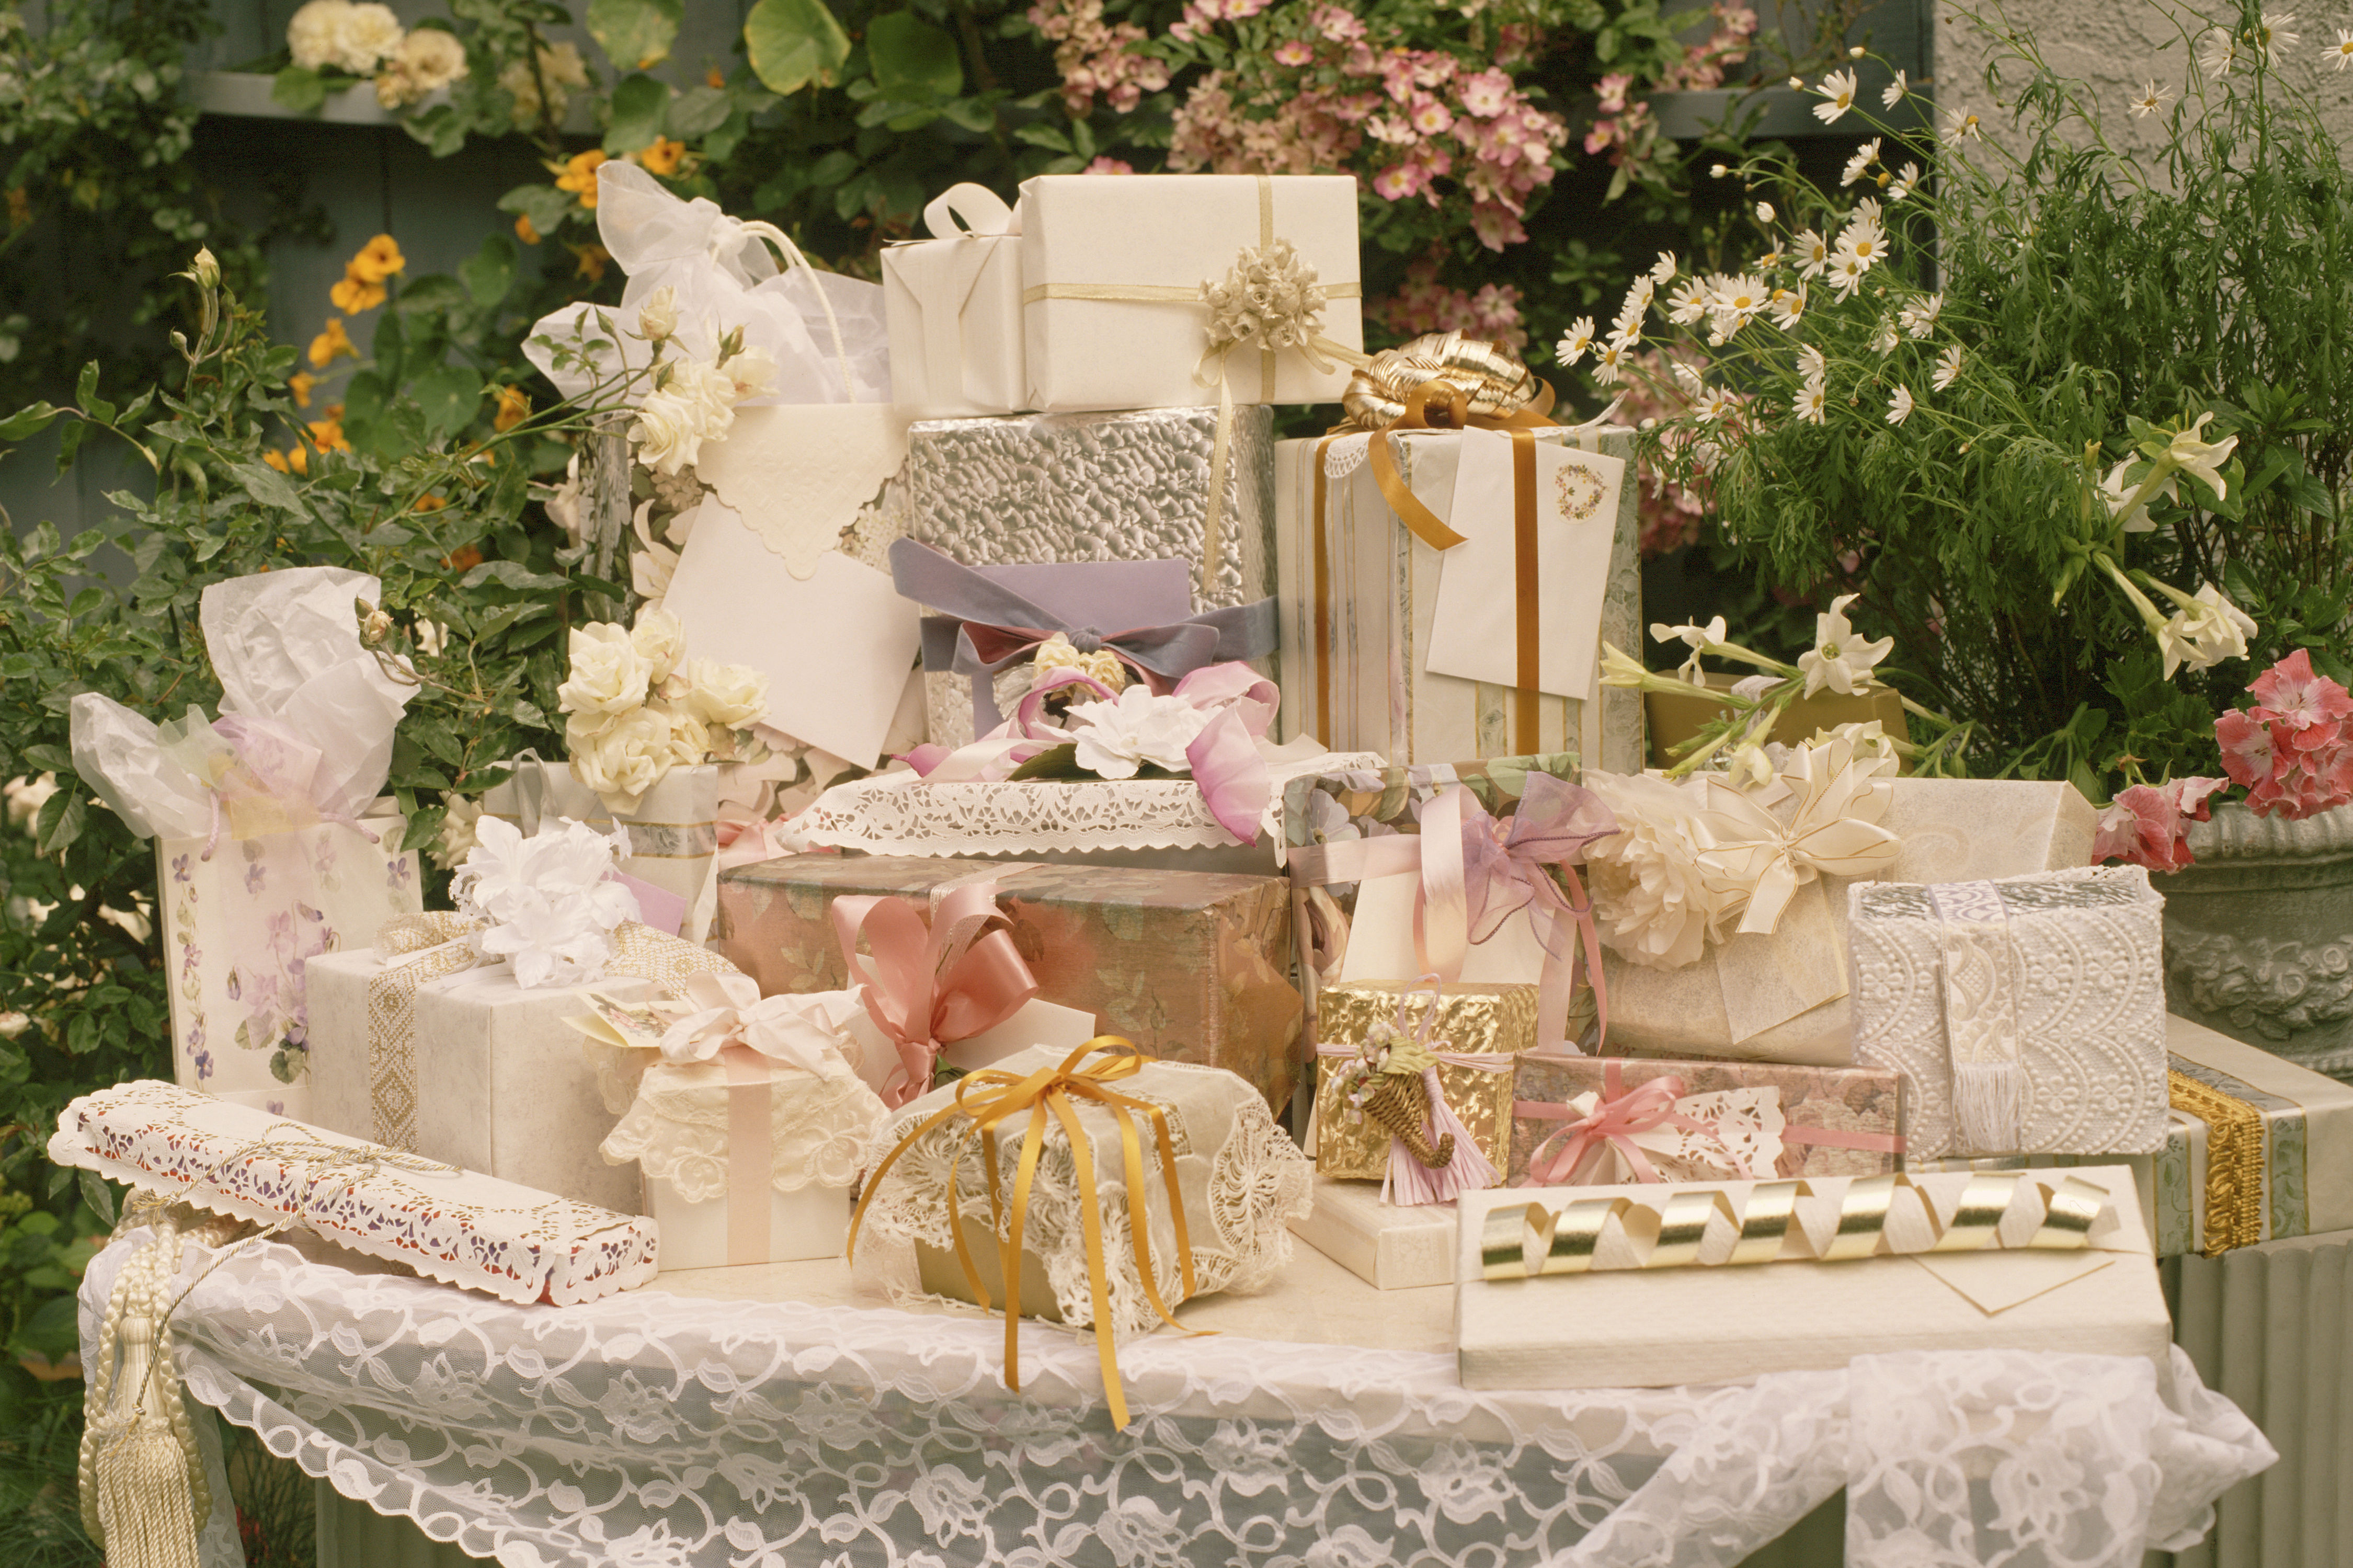 WATCH: 5 Wedding Registry Items You'll Never Use